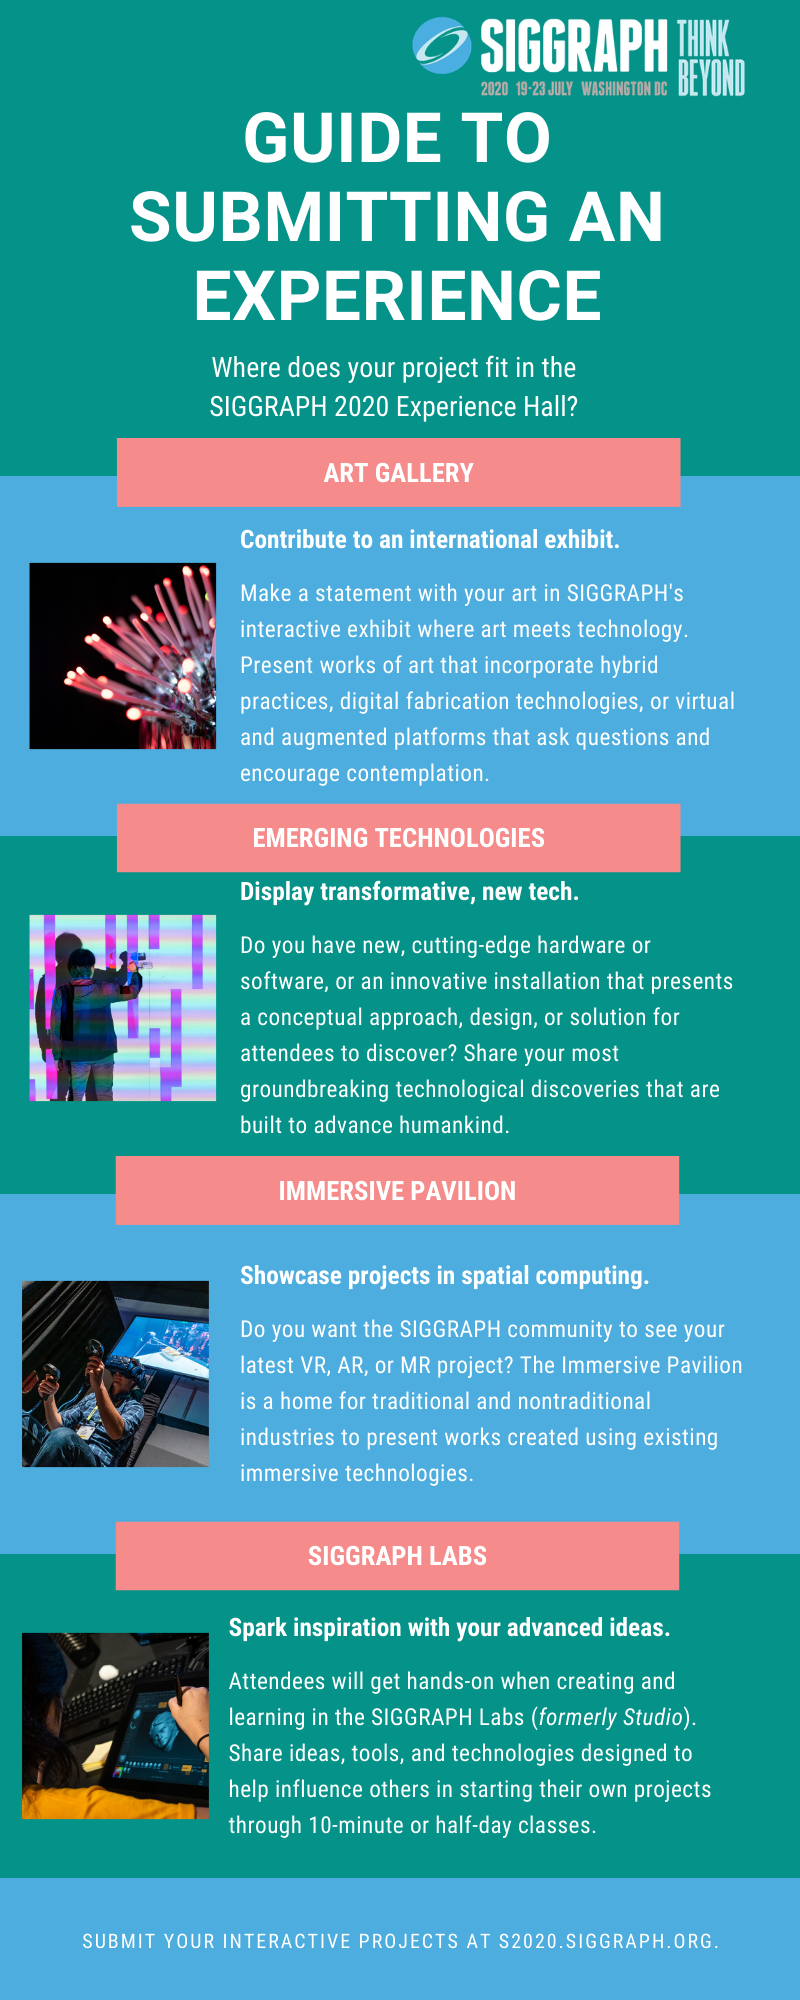 SIGGRAPH 2020 - A Guide to Submitting an Experience (infographic)